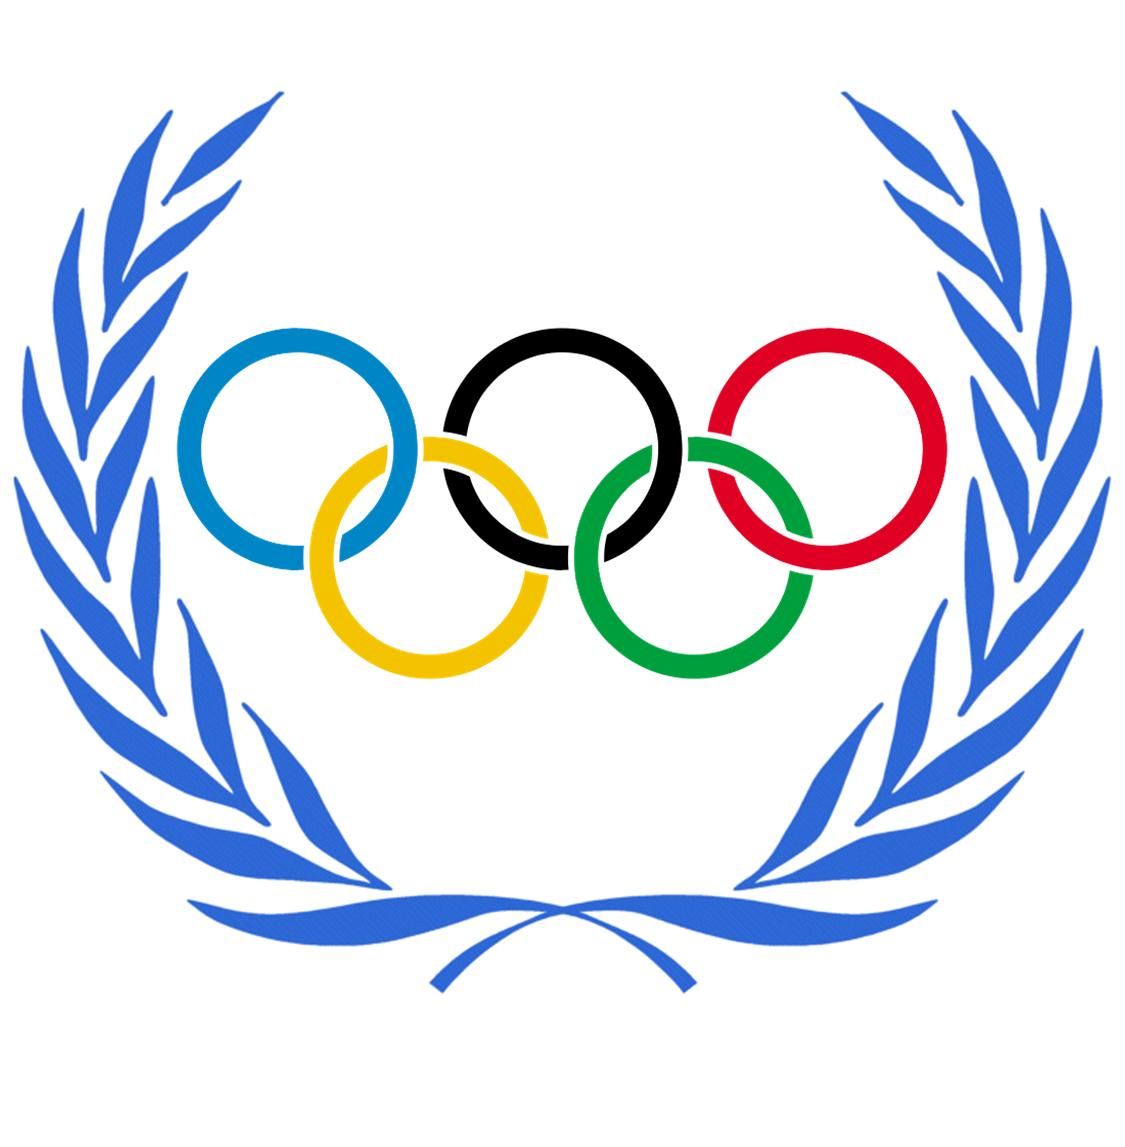 Olympic rings clip art.